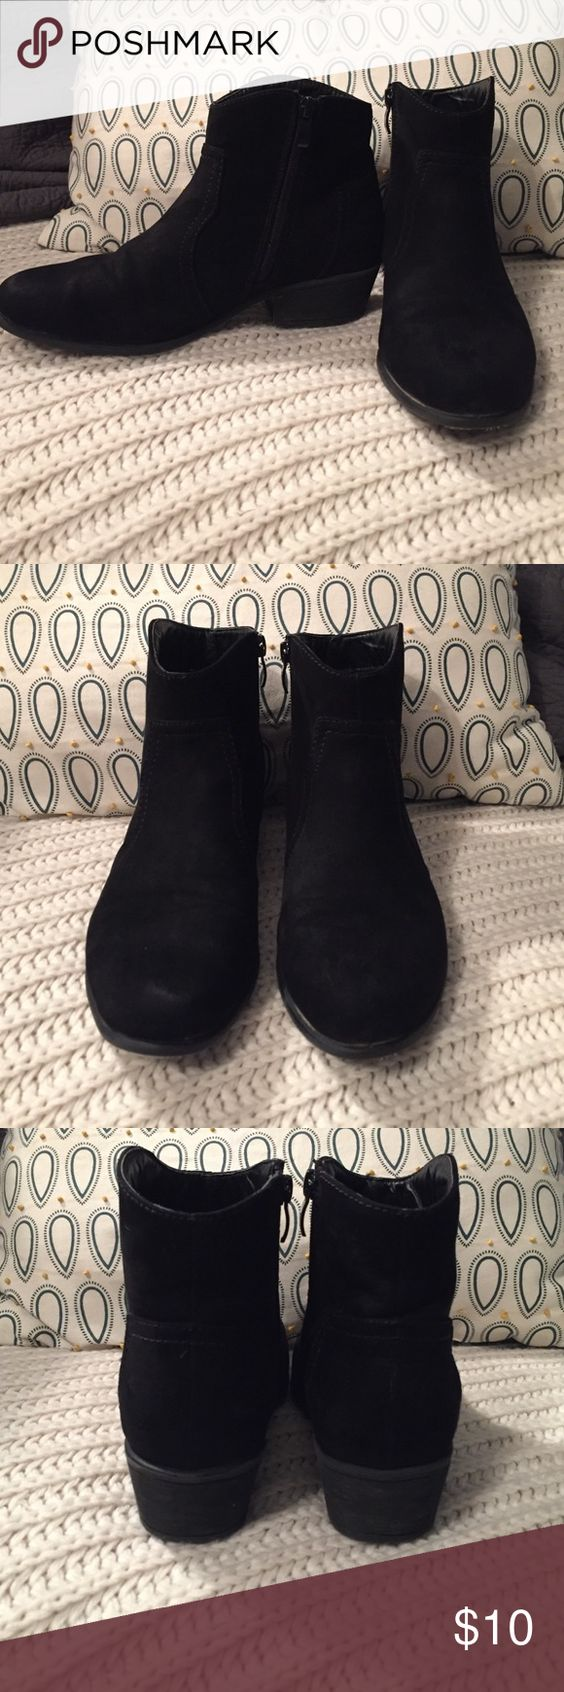 Apricot Lane Black Booties Black booties bough from Apricot Lane. They are a tad dirty and the felt soles rubbed off on the bottom, but other than that they are good! Shoes Ankle Boots & Booties